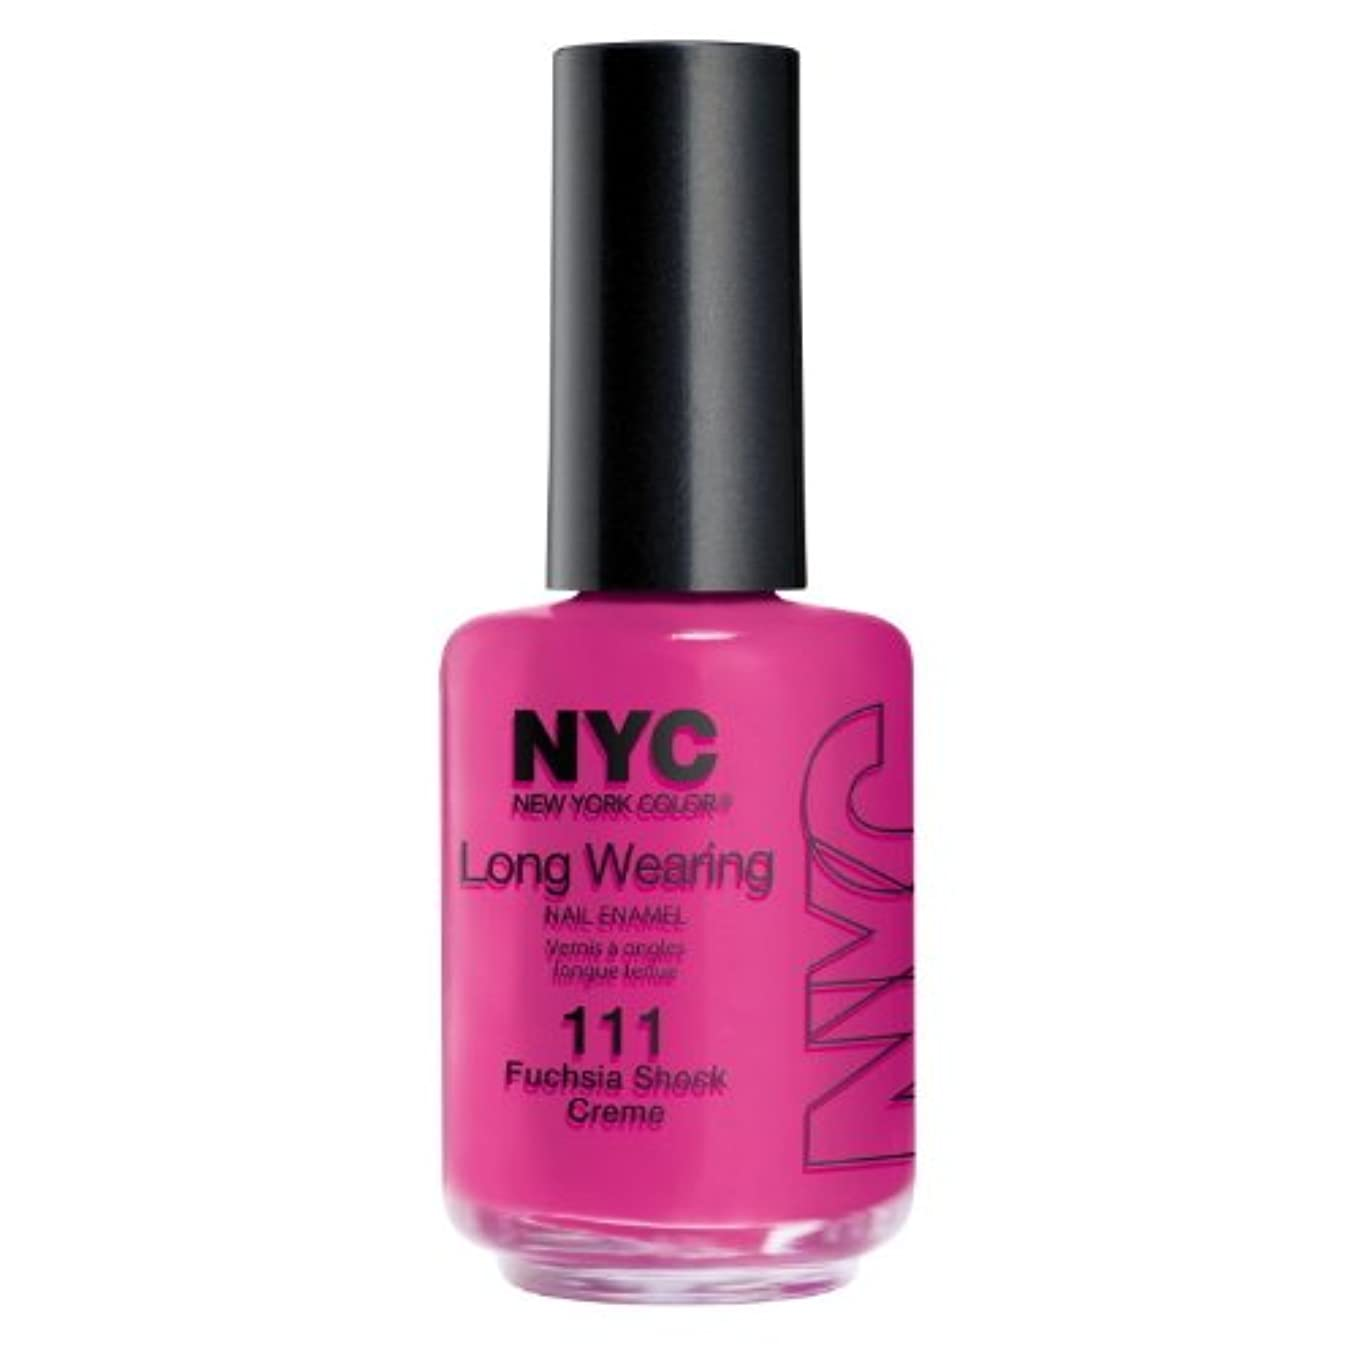 開業医チャート論争の的(3 Pack) NYC Long Wearing Nail Enamel - Fuchisia Shock Creme (並行輸入品)